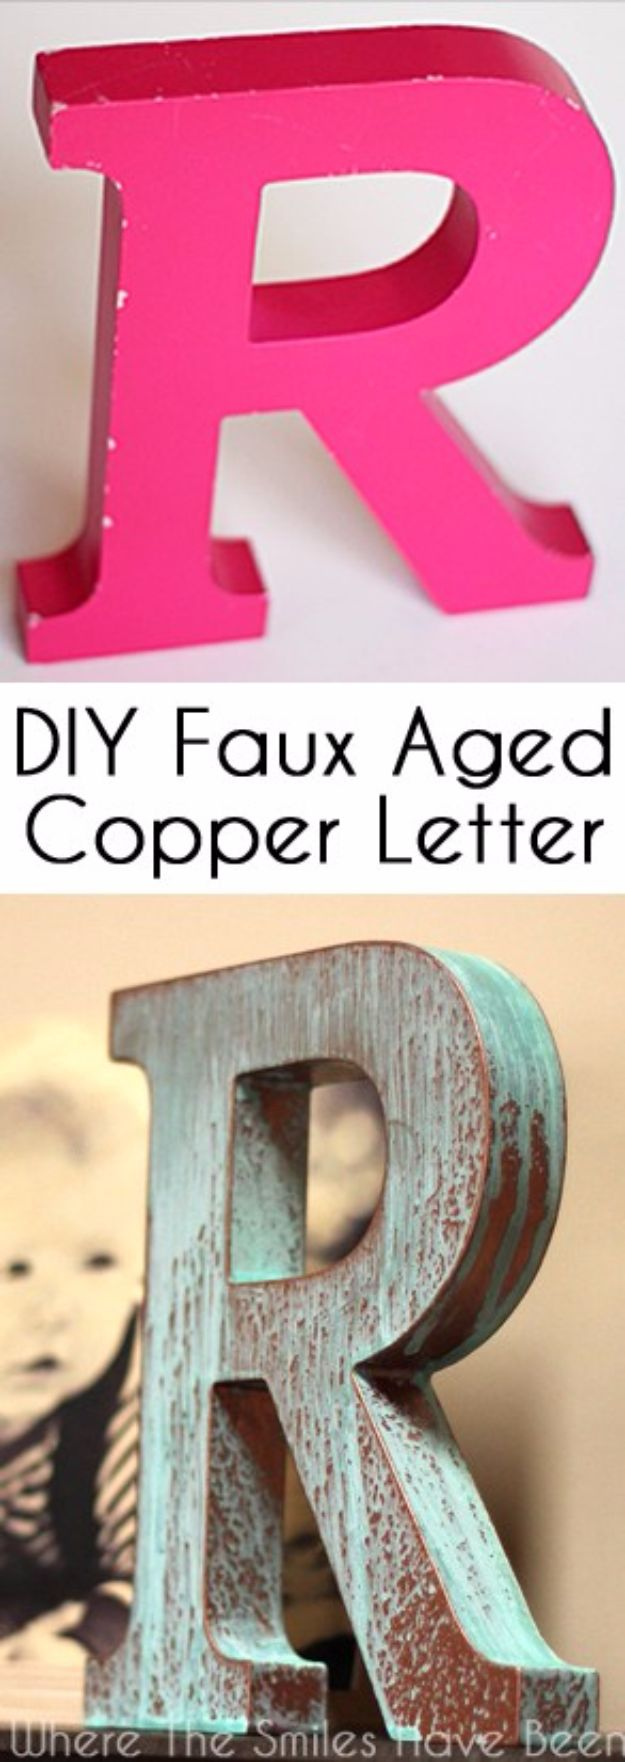 DIY Wall Letters and Word Signs - DIY Faux Copper Letter Aged with Blue Patina - Initials Wall Art for Creative Home Decor Ideas - Cool Architectural Letter Projects and Wall Art Tutorials for Living Room Decor, Bedroom Ideas. Girl or Boy Nursery. Paint, Glitter, String Art, Easy Cardboard and Rustic Wooden Ideas - DIY Projects and Crafts by DIY JOY #diysigns #diyideas #diyhomedecor